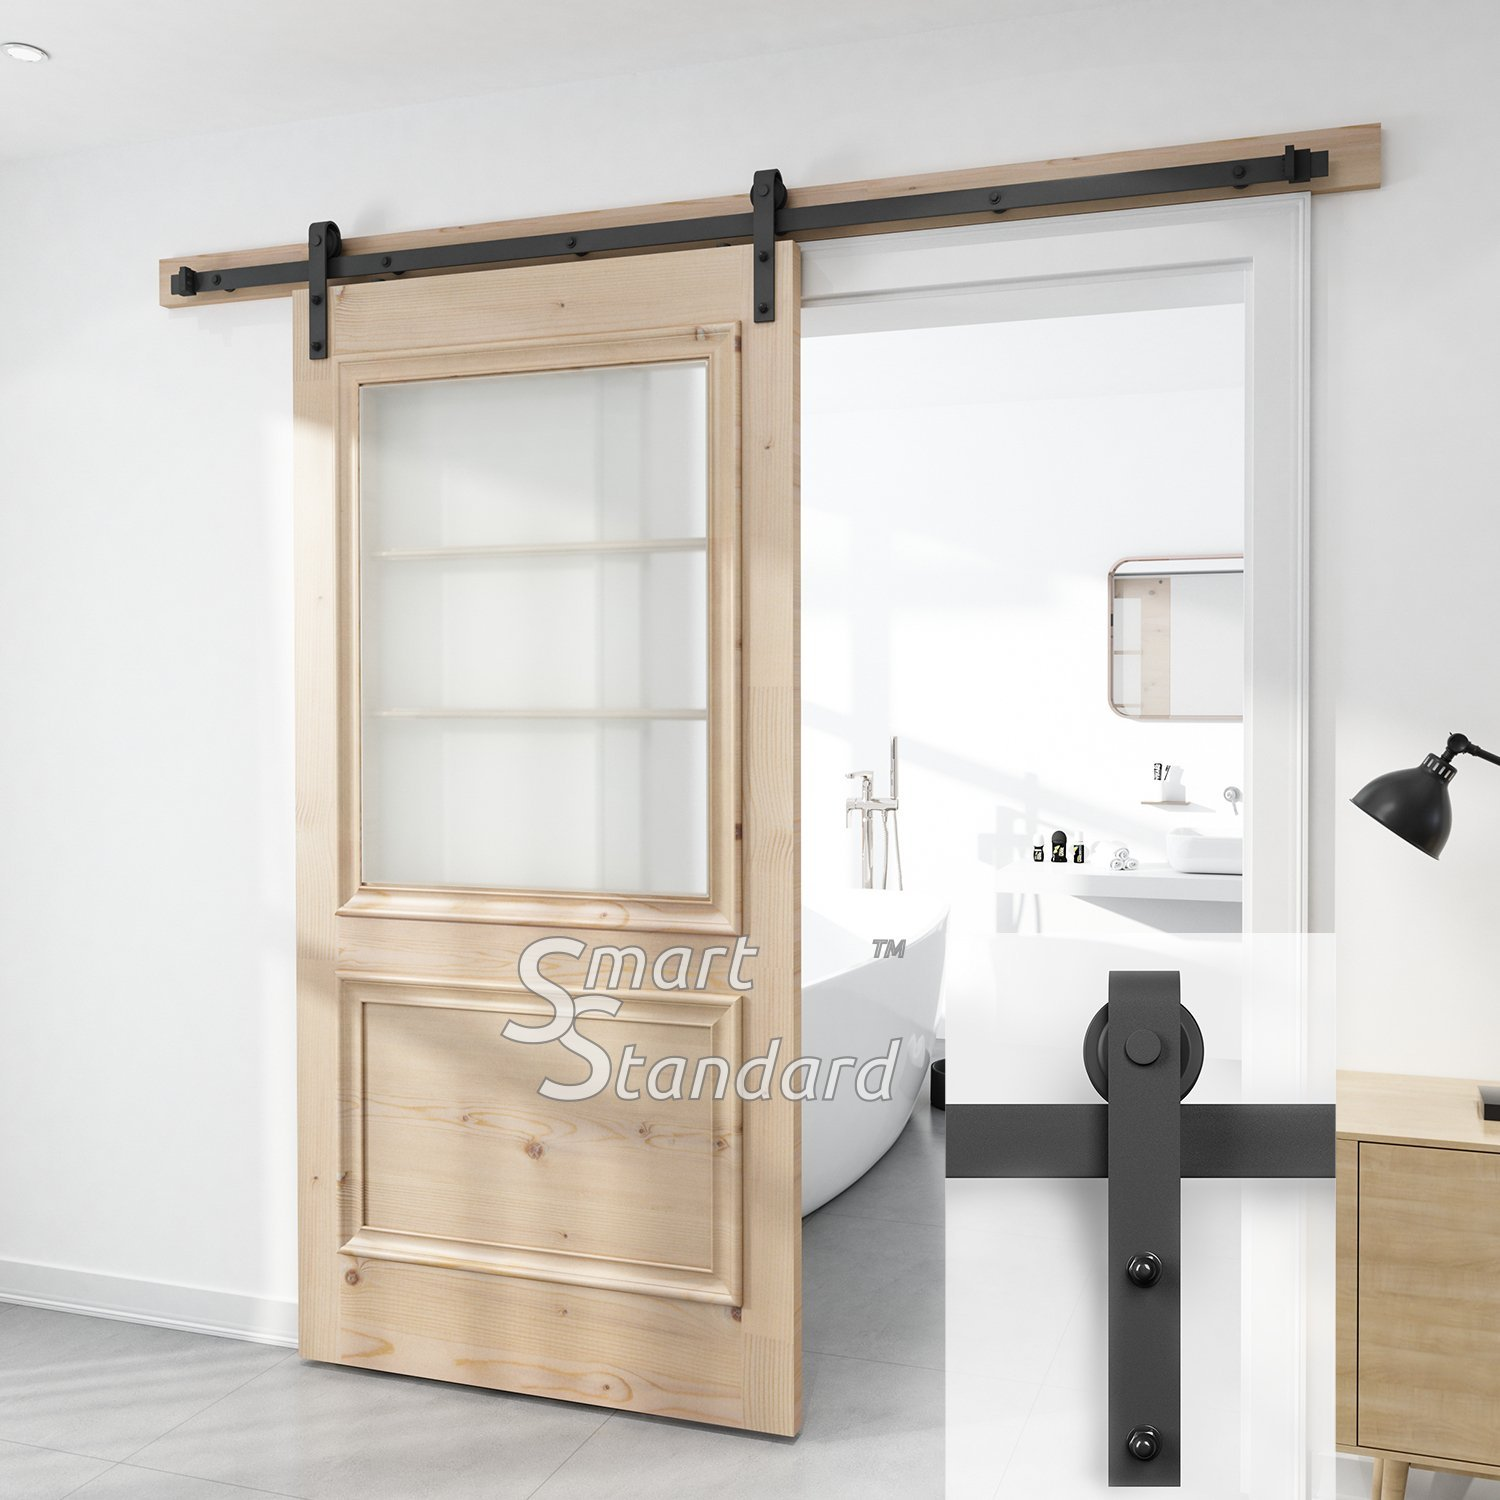 SMARTSTANDARD SDH-0080-STANDARD-BK Heavy Duty Sturdy Sliding Barn Door Hardware Kit, 8' SingleRail,Super Smoothly and Quietly, Simple and Easy to Install, Fit 42-48'' Wide DoorPanel by SMARTSTANDARD (Image #7)